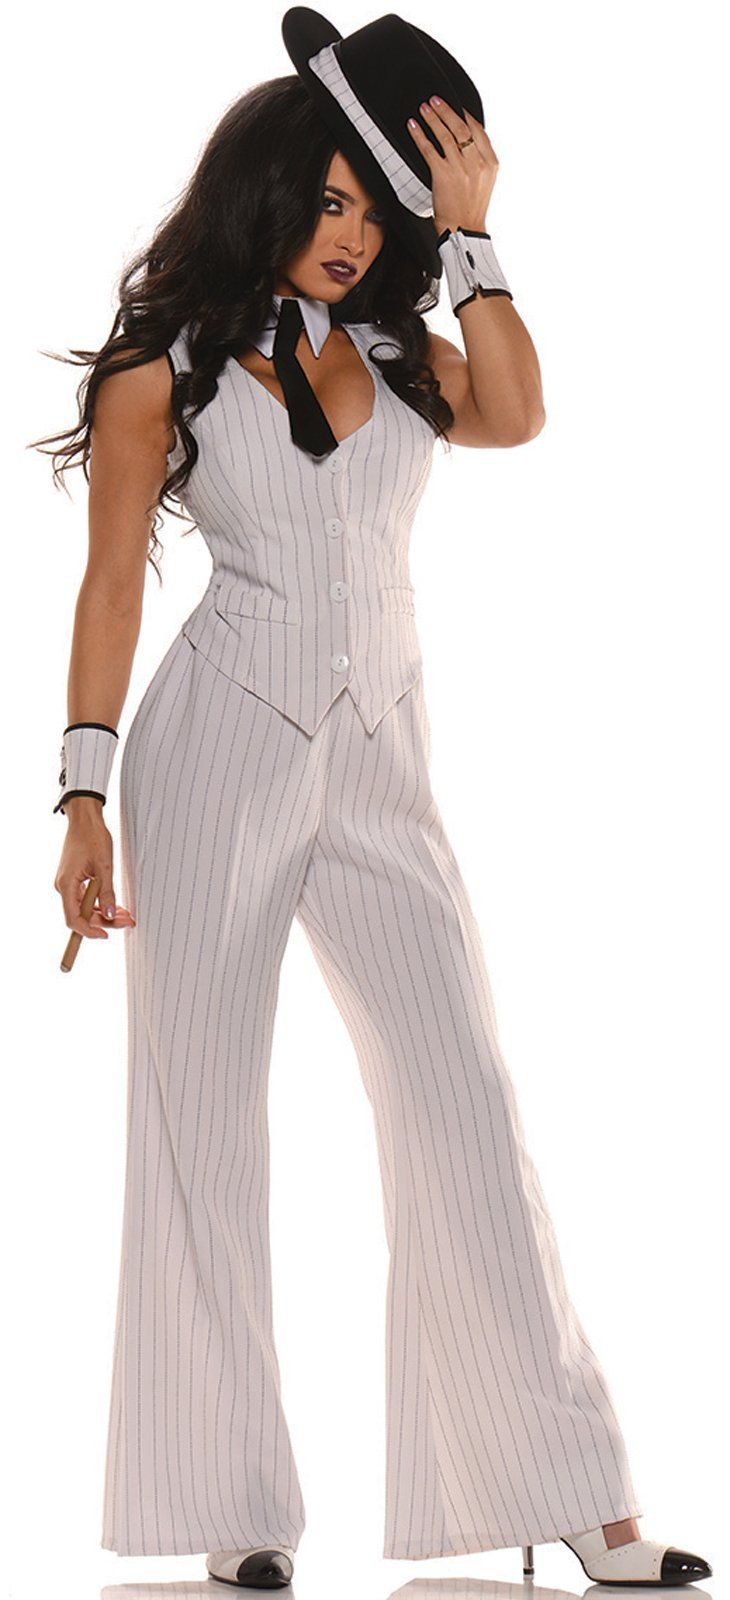 Womens Mob Boss Gangster Costume from Buycostumes.com                                                                                                                                                                                 More